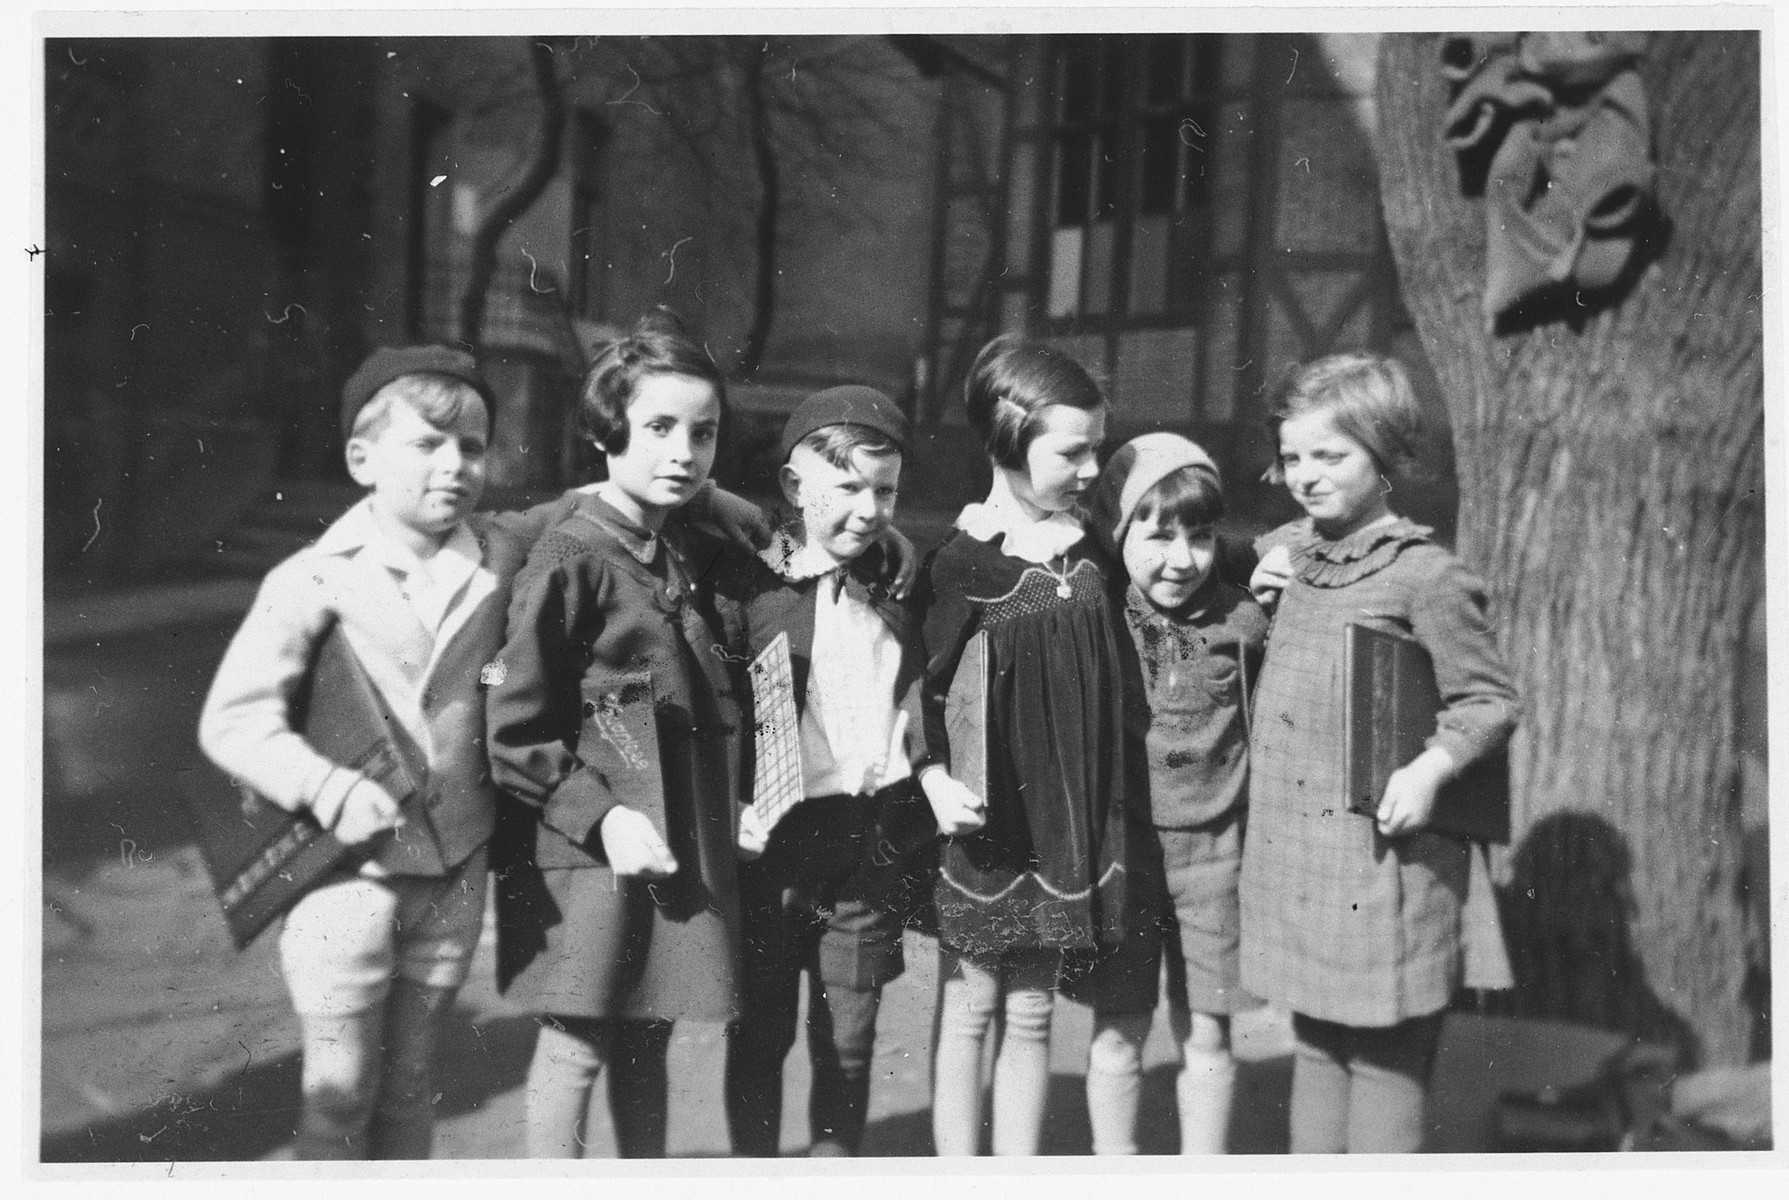 Six school friends pose in a row with their report cards after completing first-grade.   Those pictured include Hannelore Mansbacher (first from right), Heinz Kleczewski (second from right) and Hanna Frischer (second from left). Only Hannelore Mansbacher survived the war.